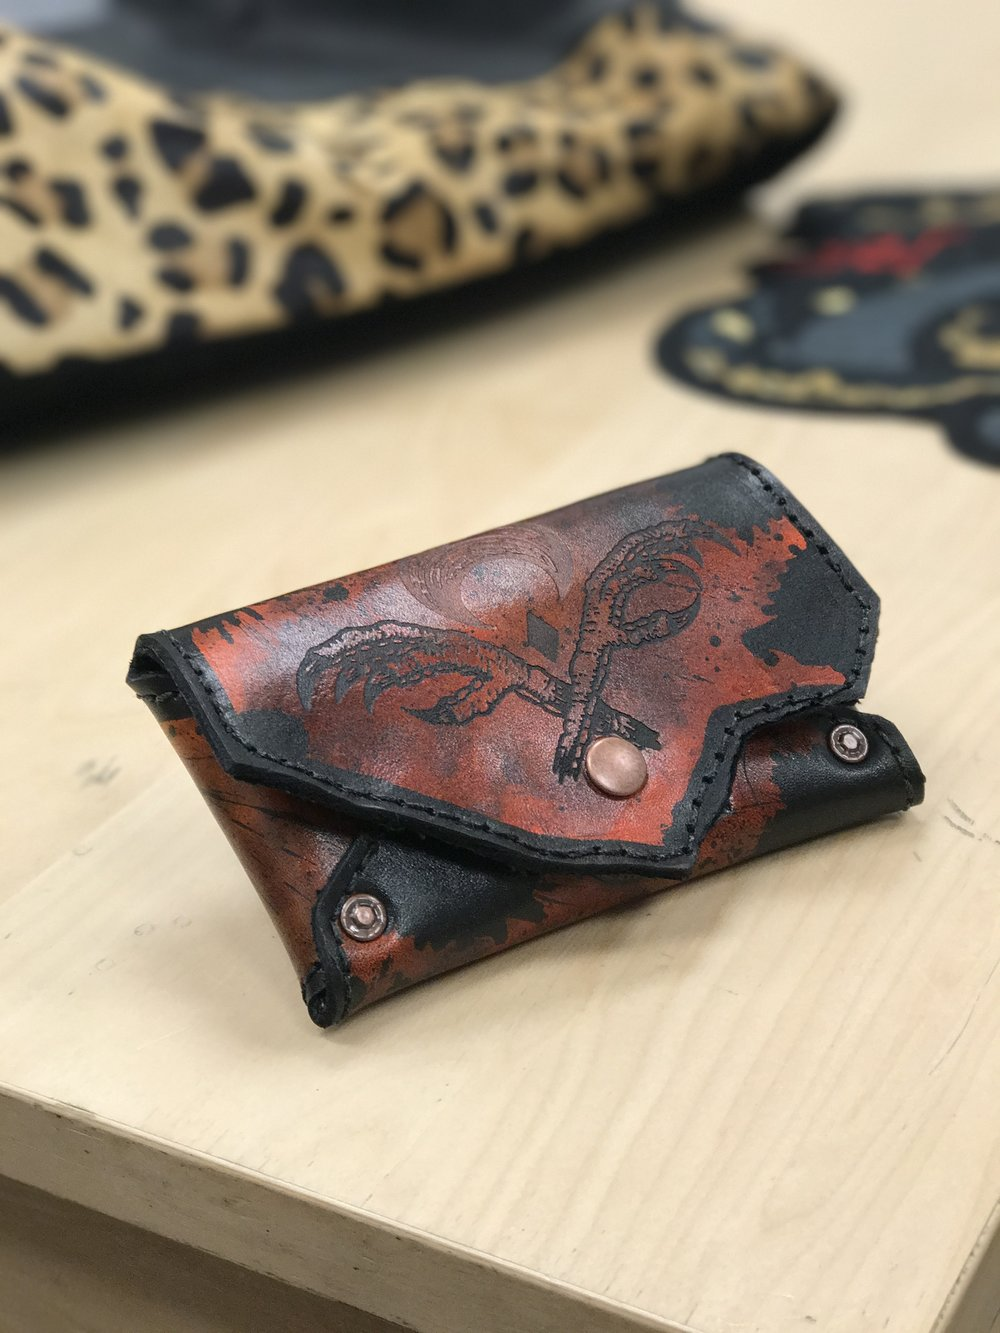 Lunation Leathers Leather Wallet Collaboration